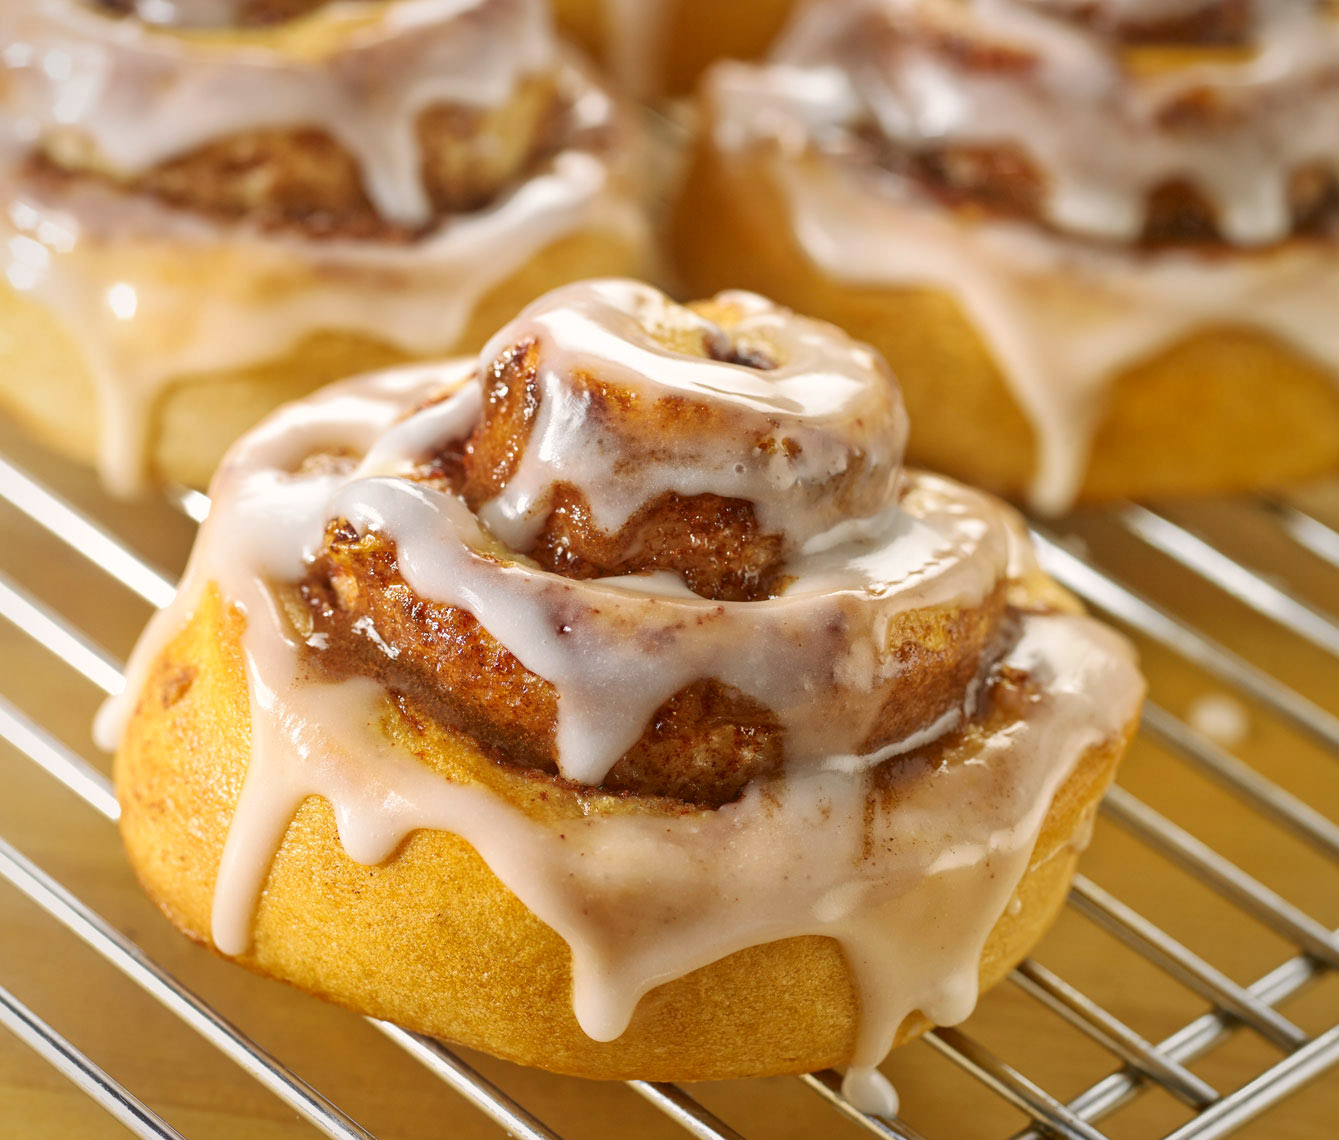 Cinnamon rolls/dripping frosting/cooling rack/food photography